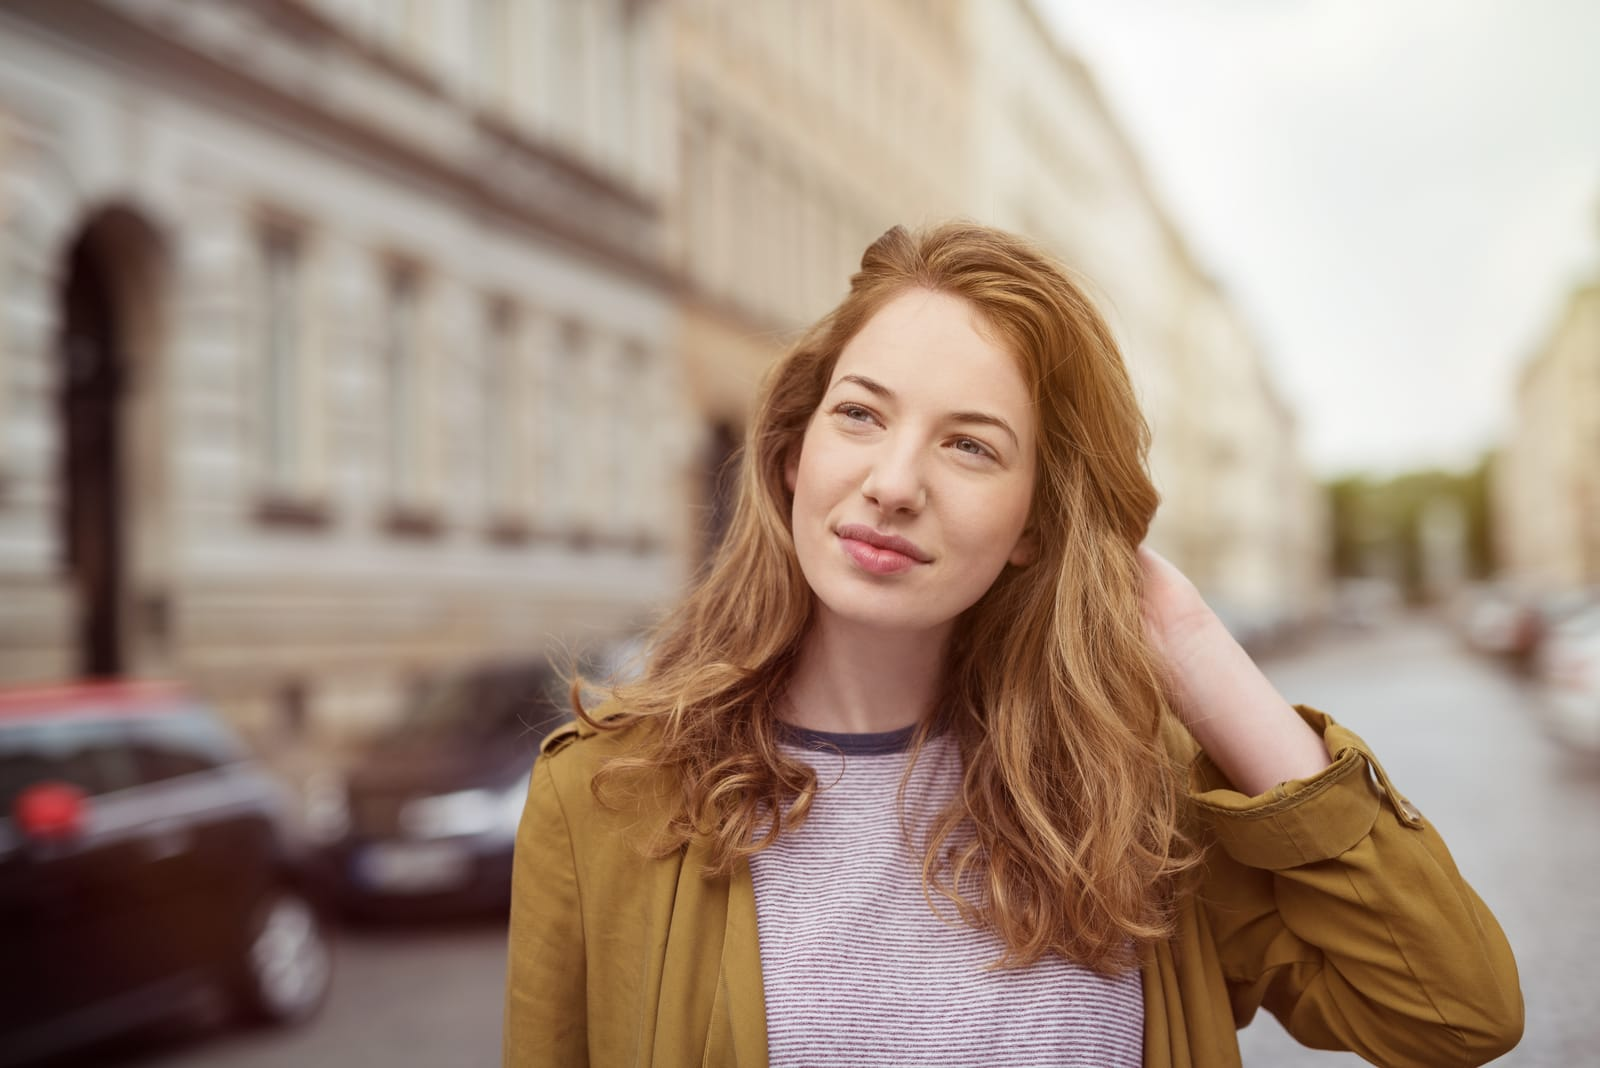 portrait of an attractive young woman on the street